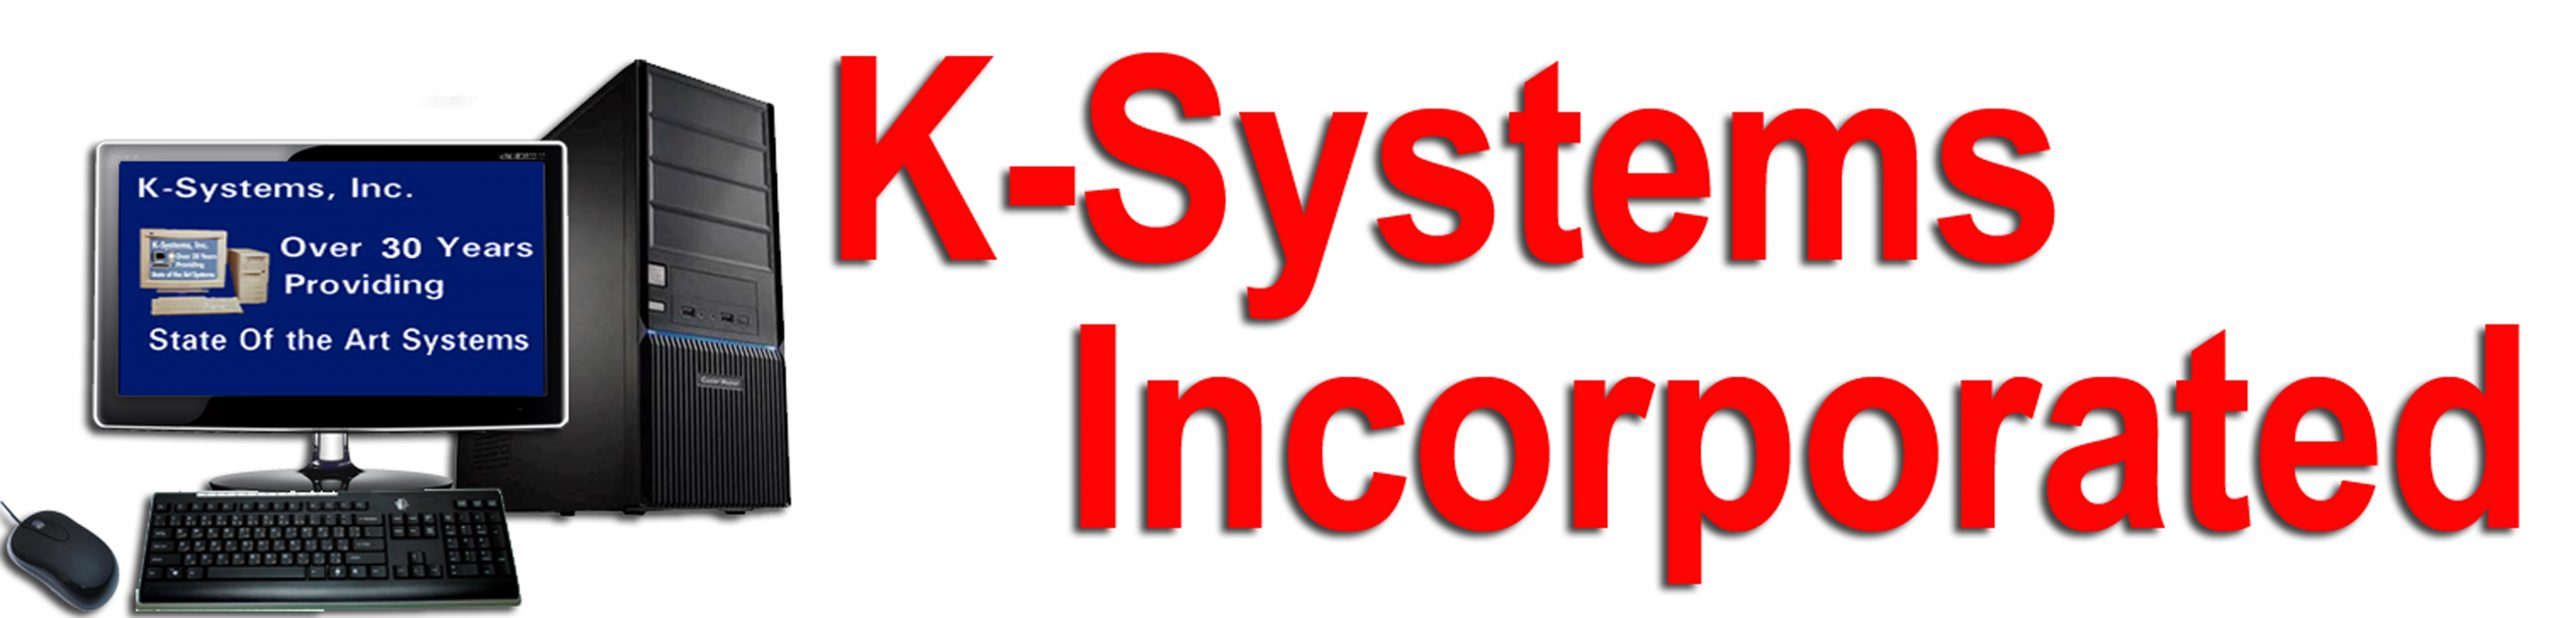 K-Systems Incorporated